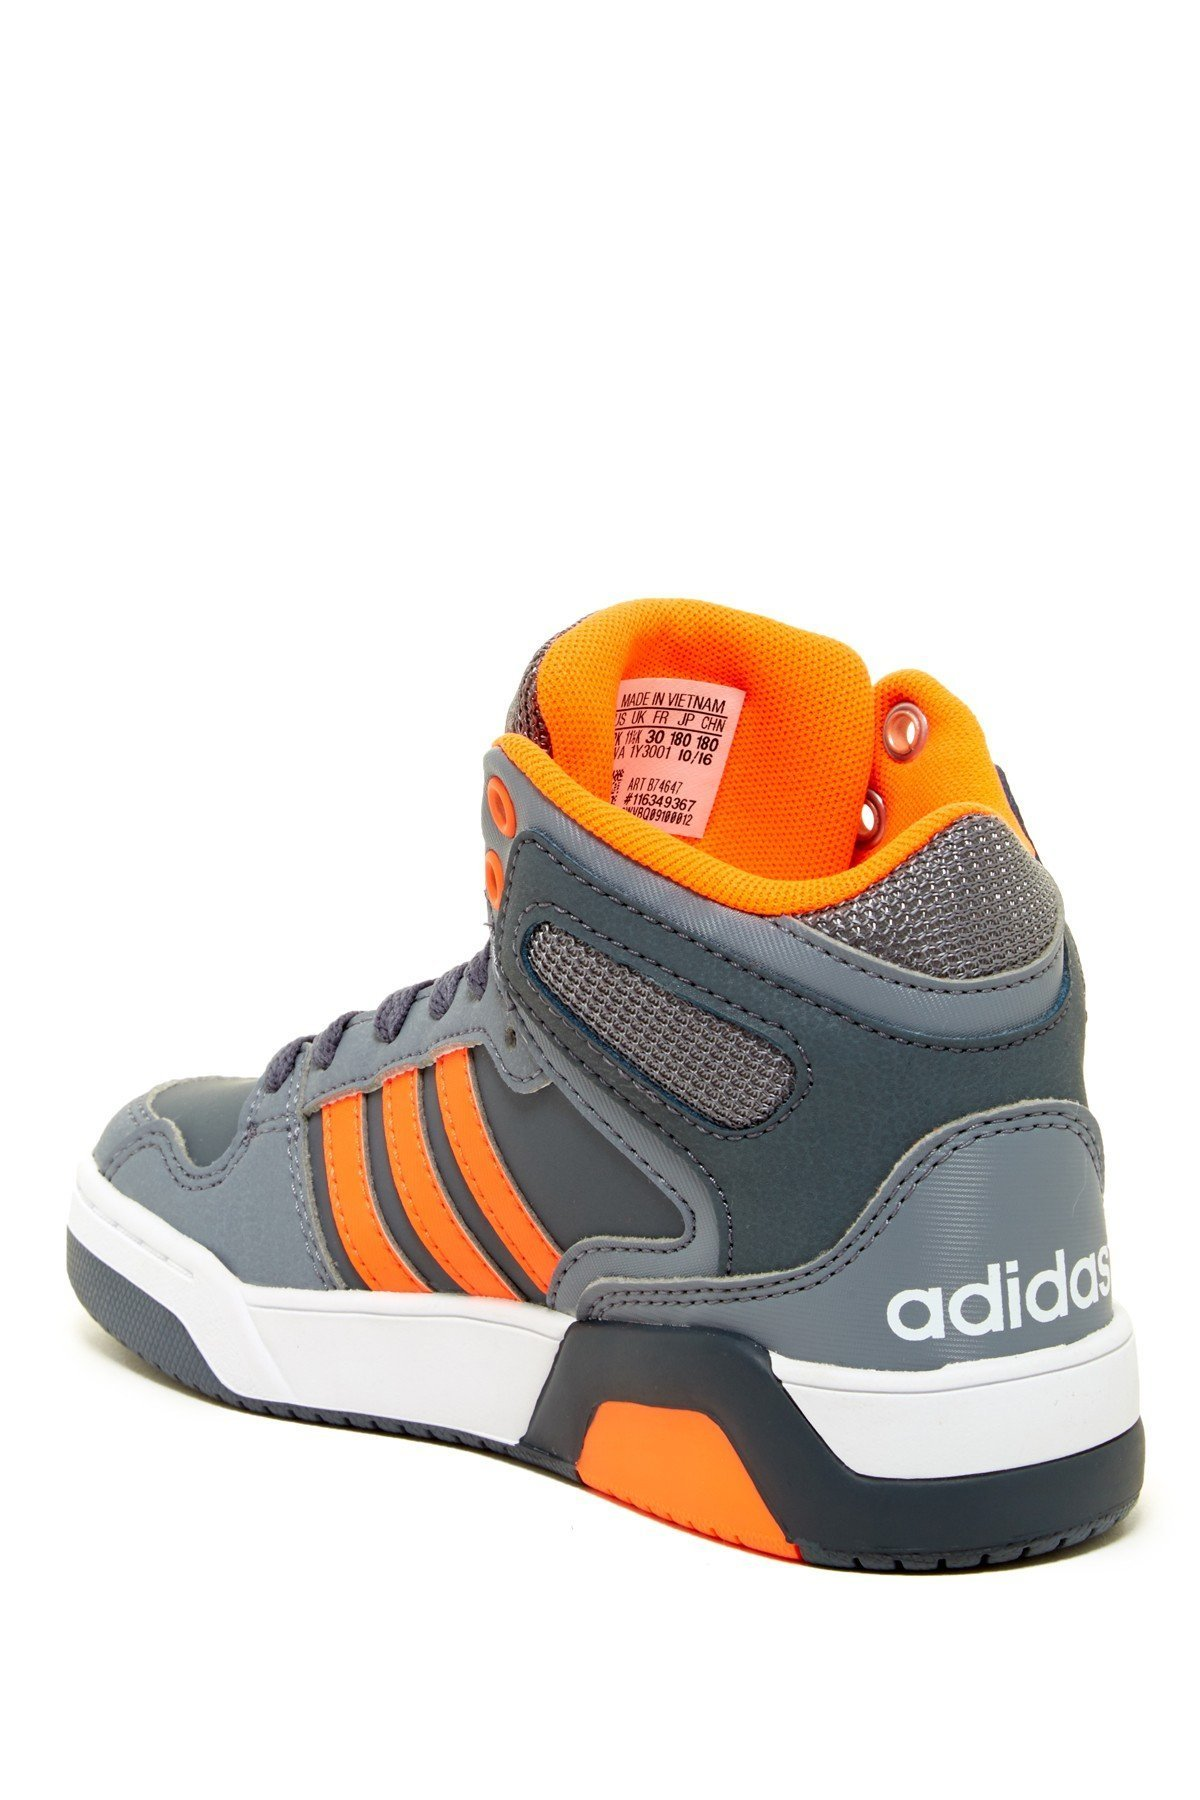 日本未入荷 BB9TIS Basketball Sneaker (Little Kid  関送込!!